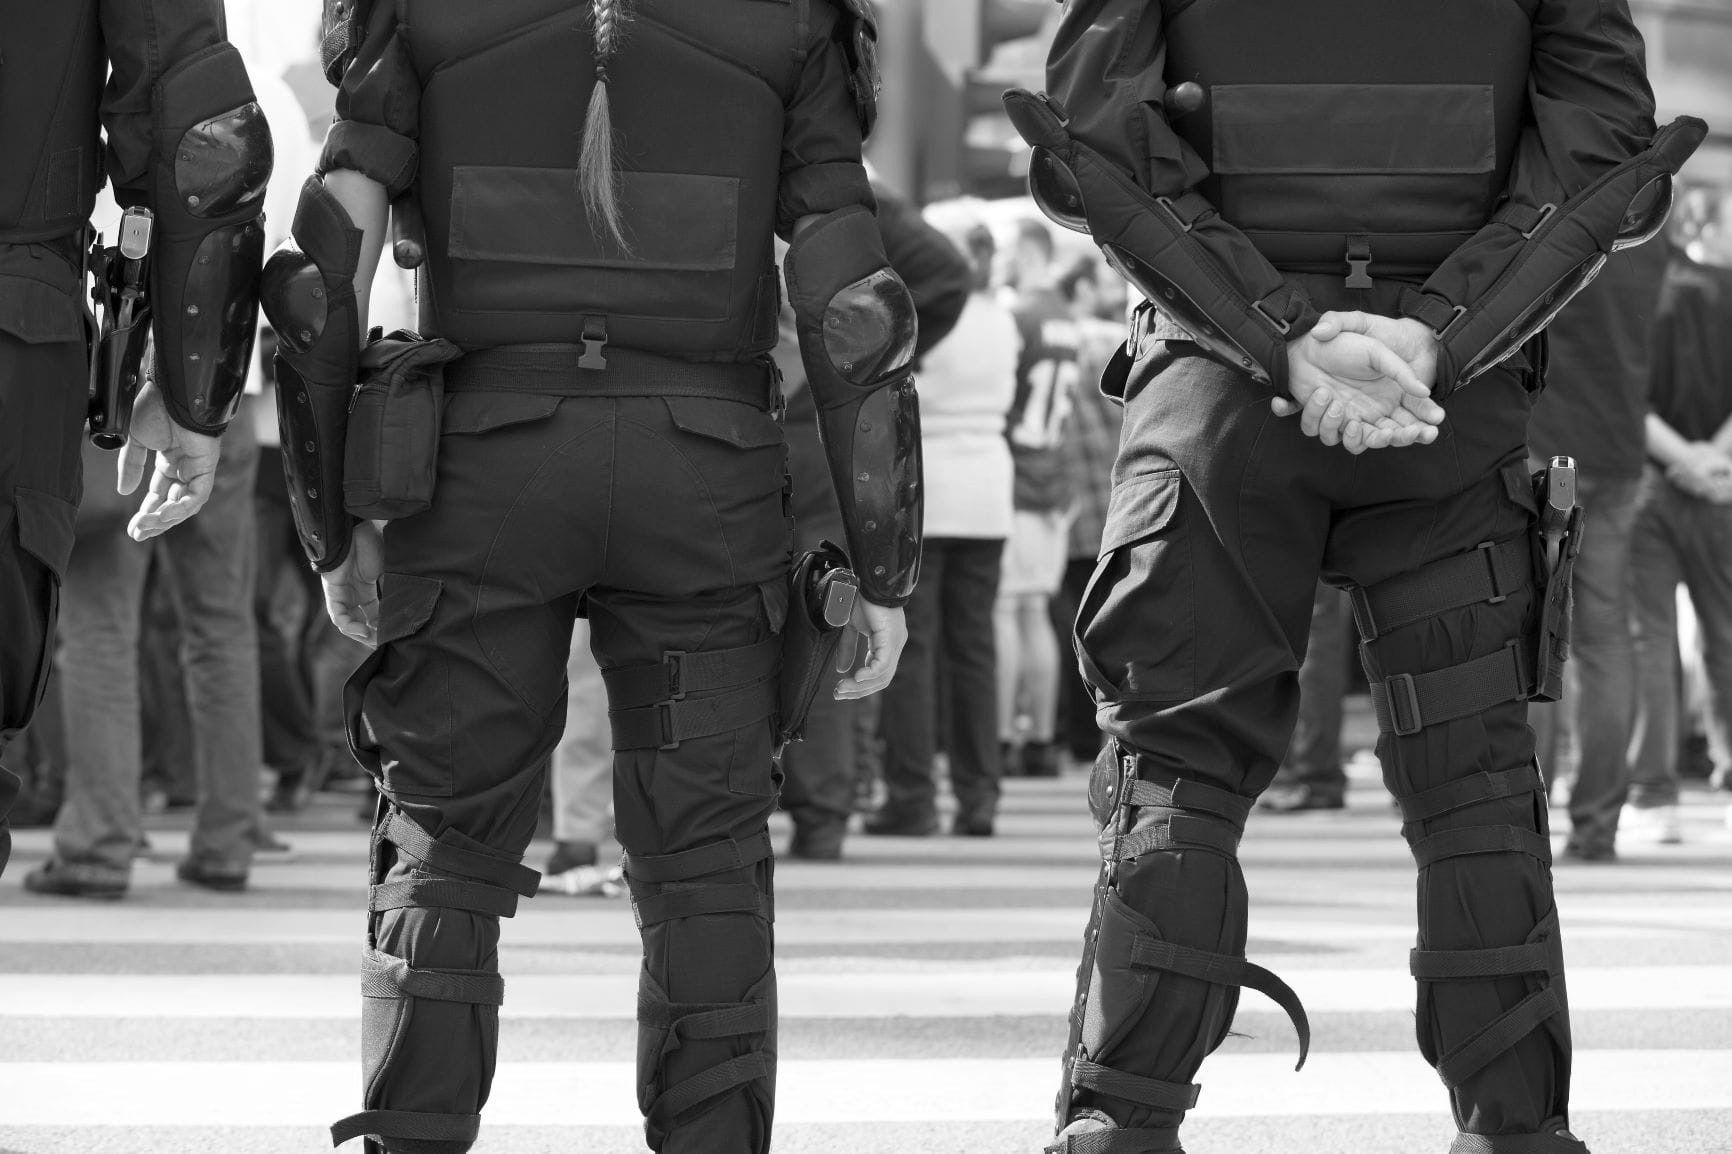 police officers facing a crowd and wearing body armor